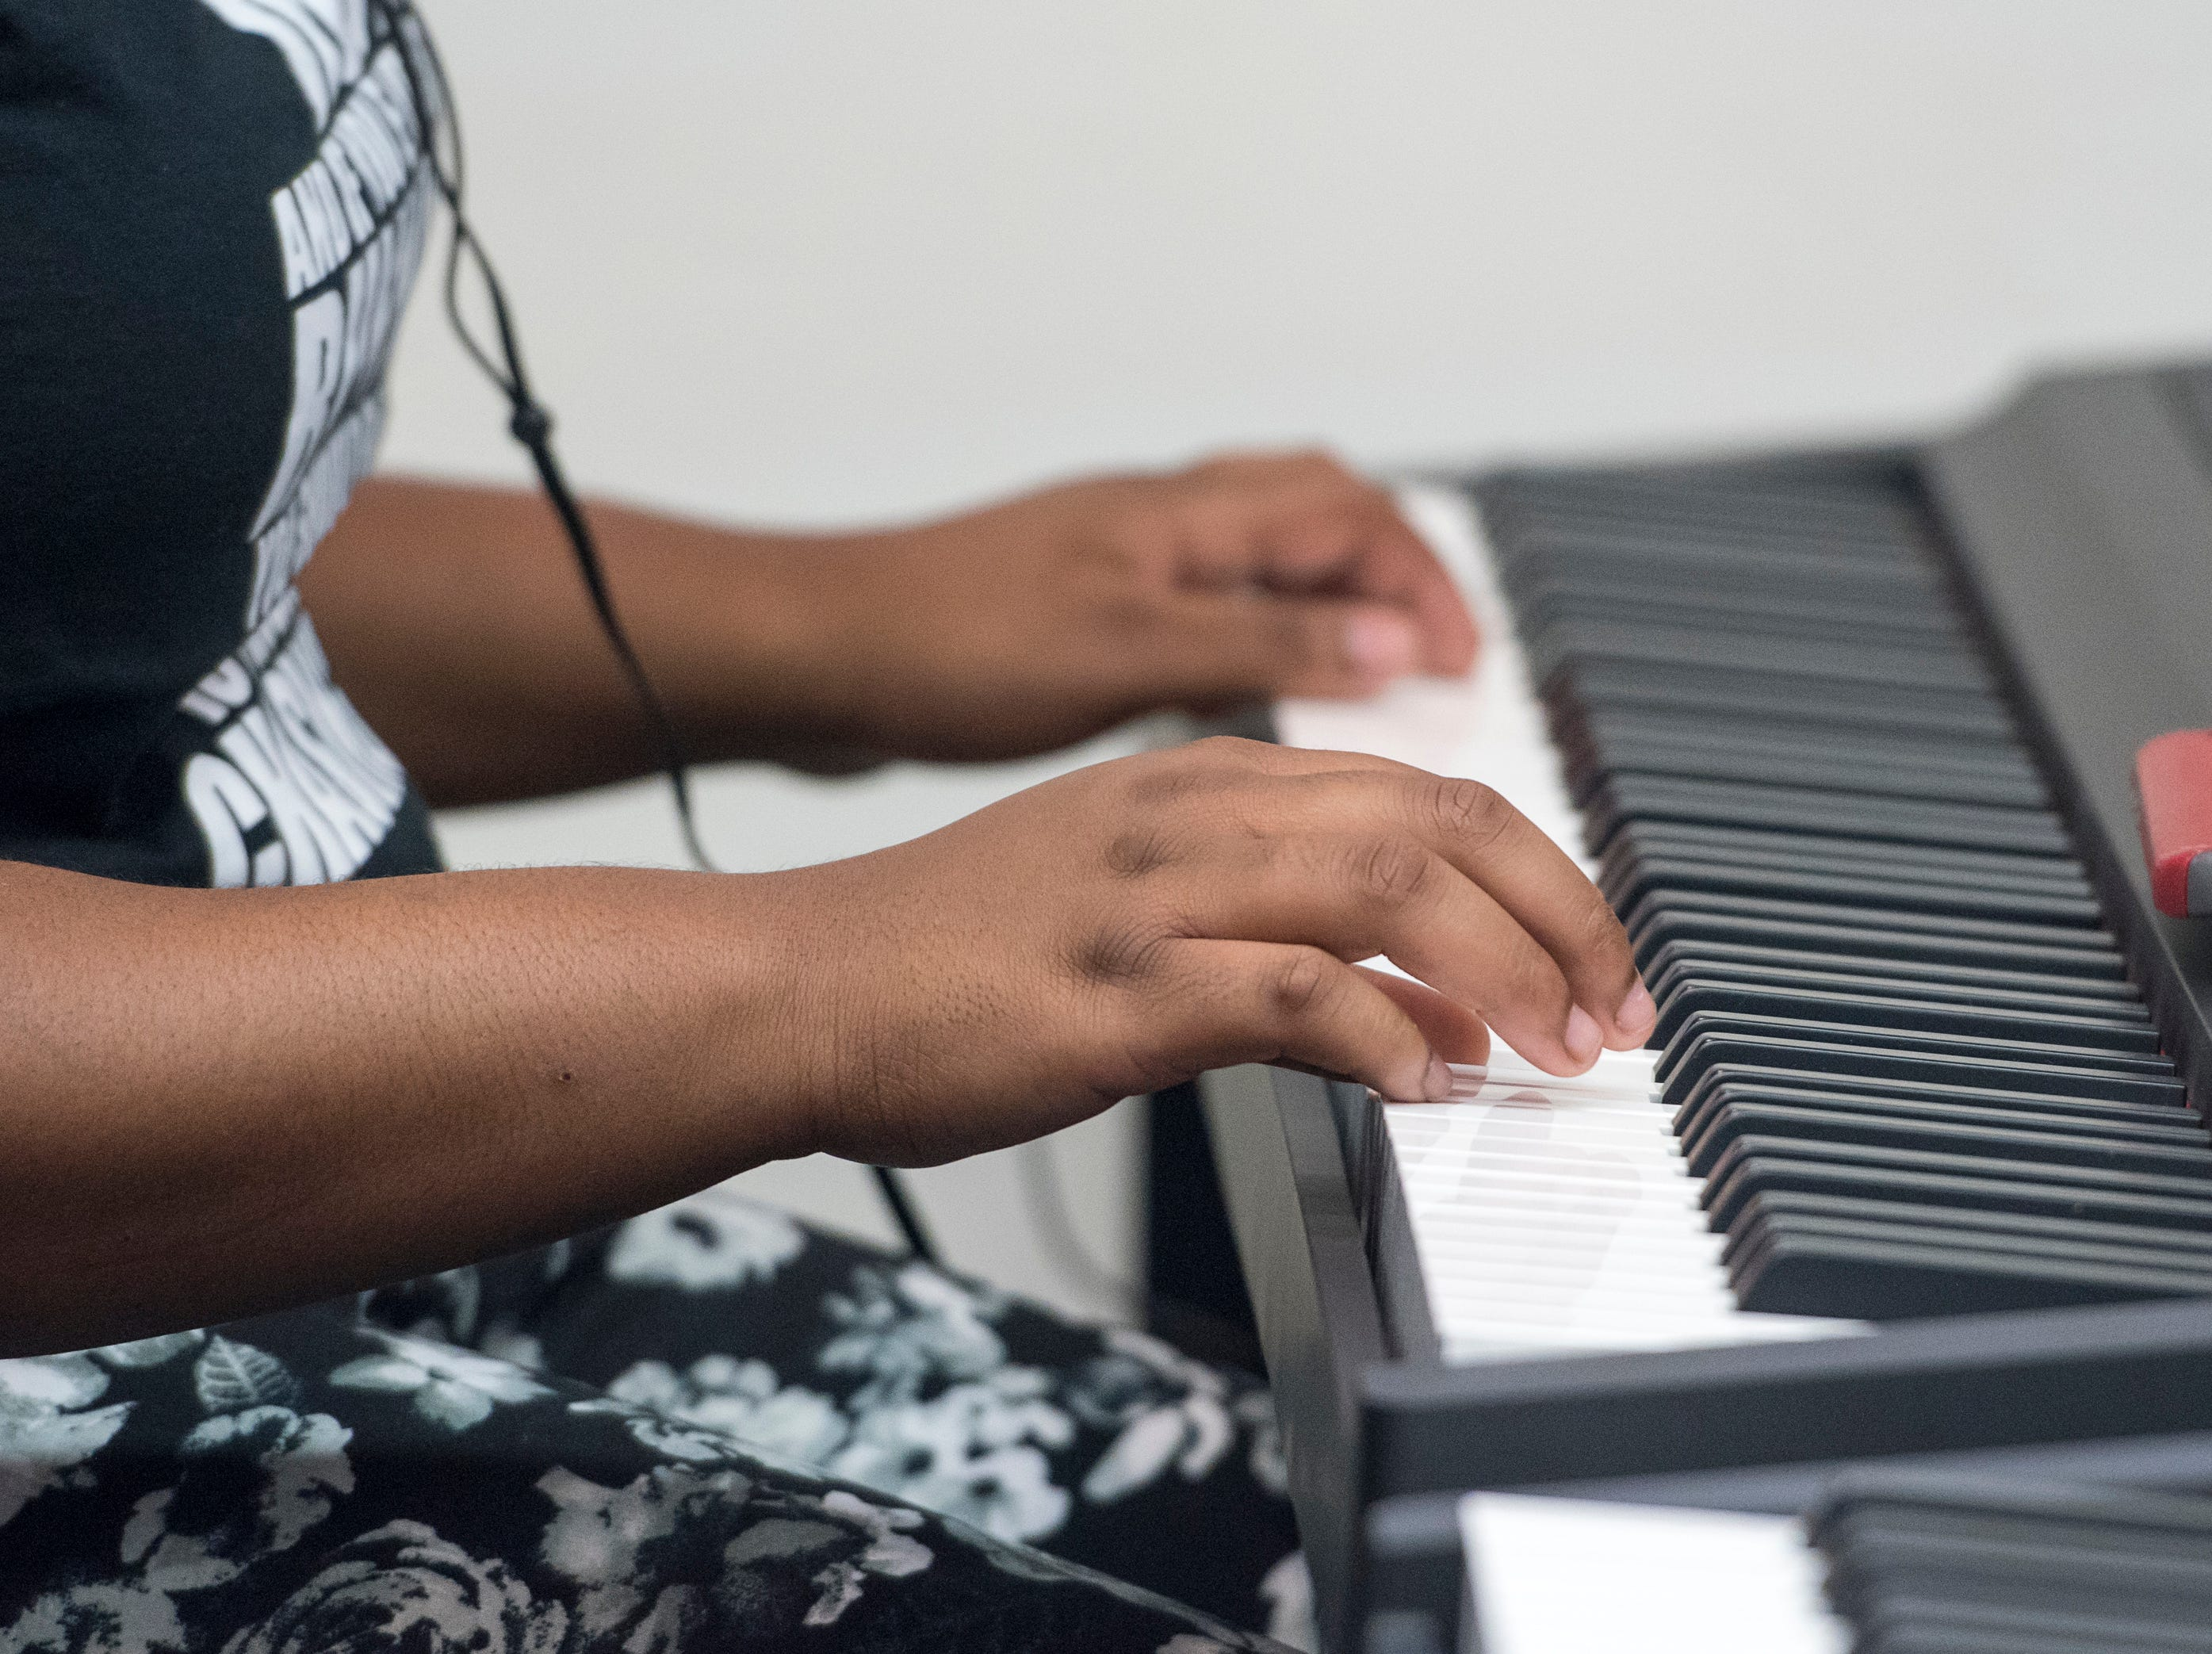 Chasity Patterson, 14, tries out the new piano studio at Warrington Middle School in Pensacola on Friday, August 2, 2018.